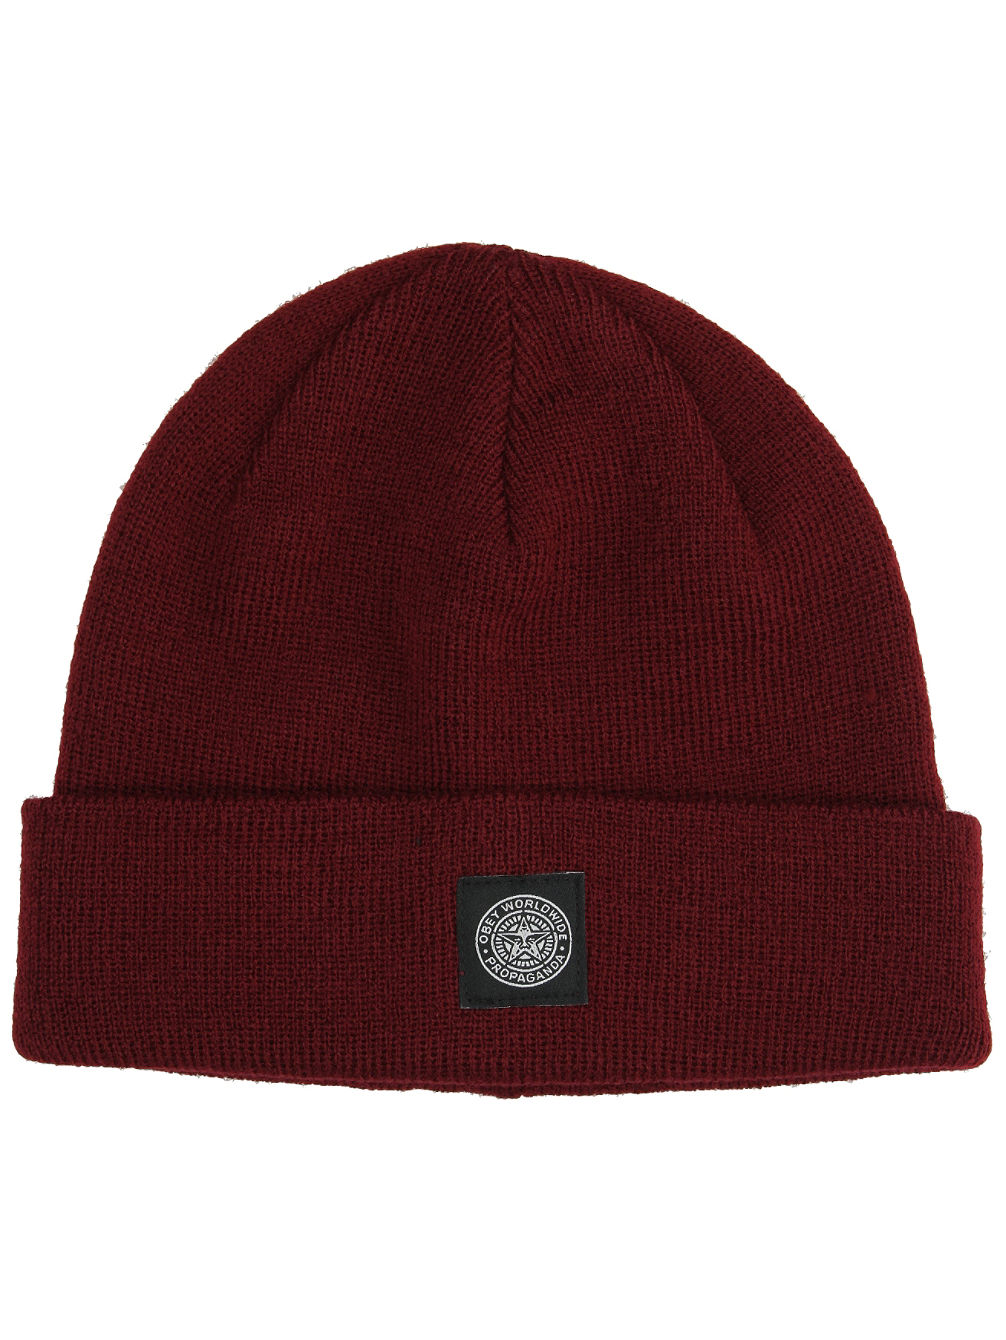 obey-worldwide-seal-beanie